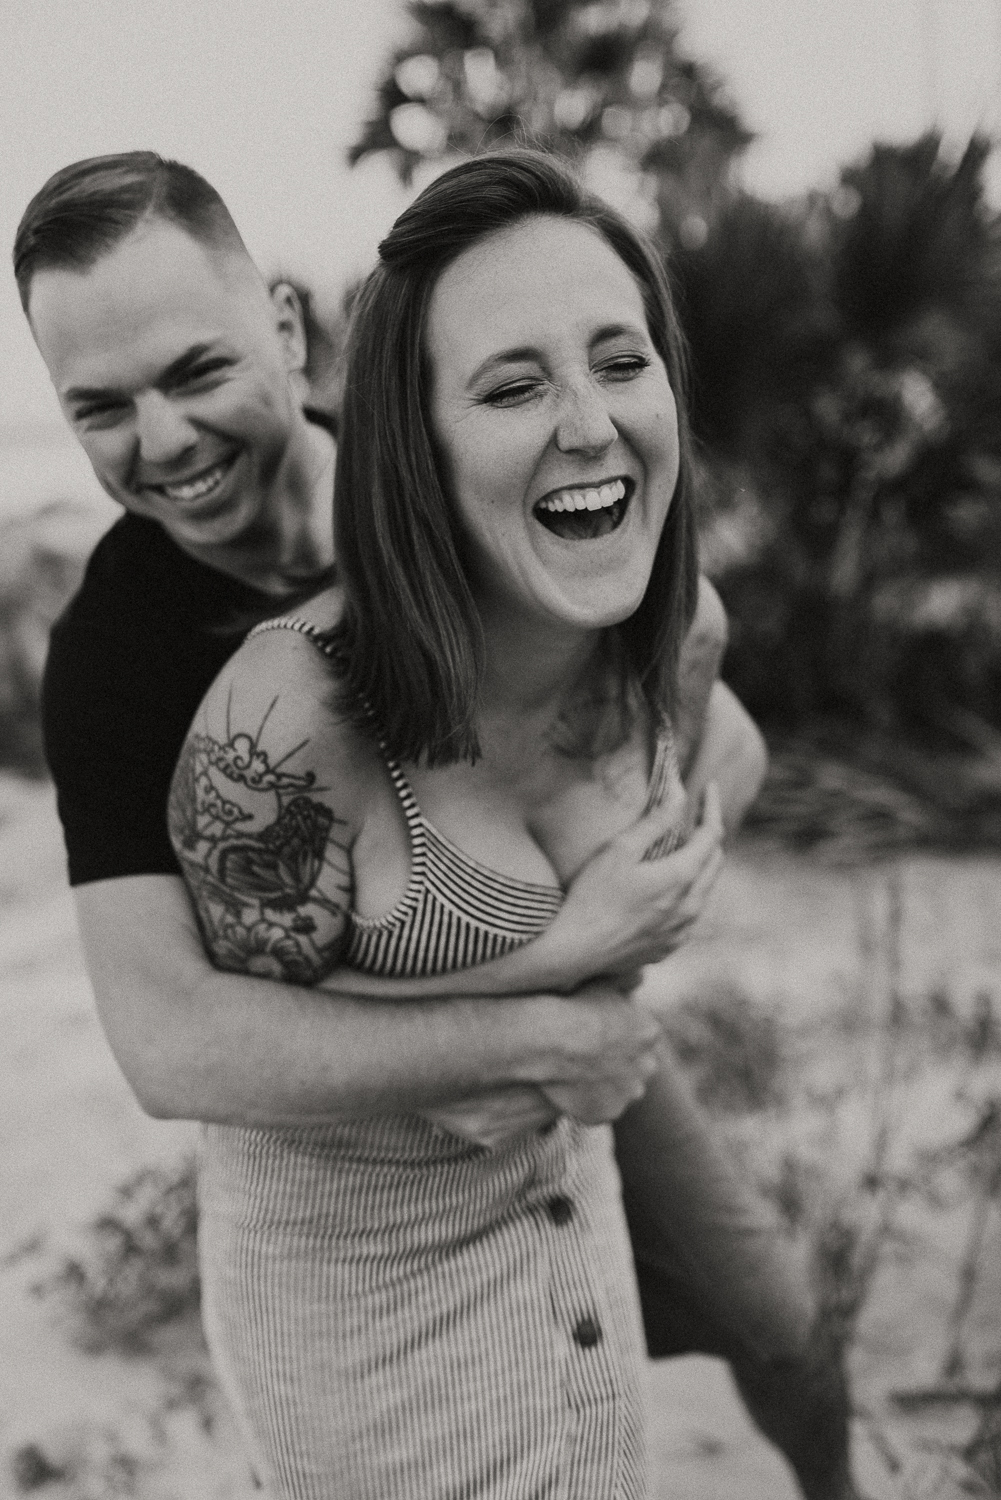 Port Royal South Carolina Engagement, Anniversary and Adventure Photographer | MORGAN ELLIS | Blog